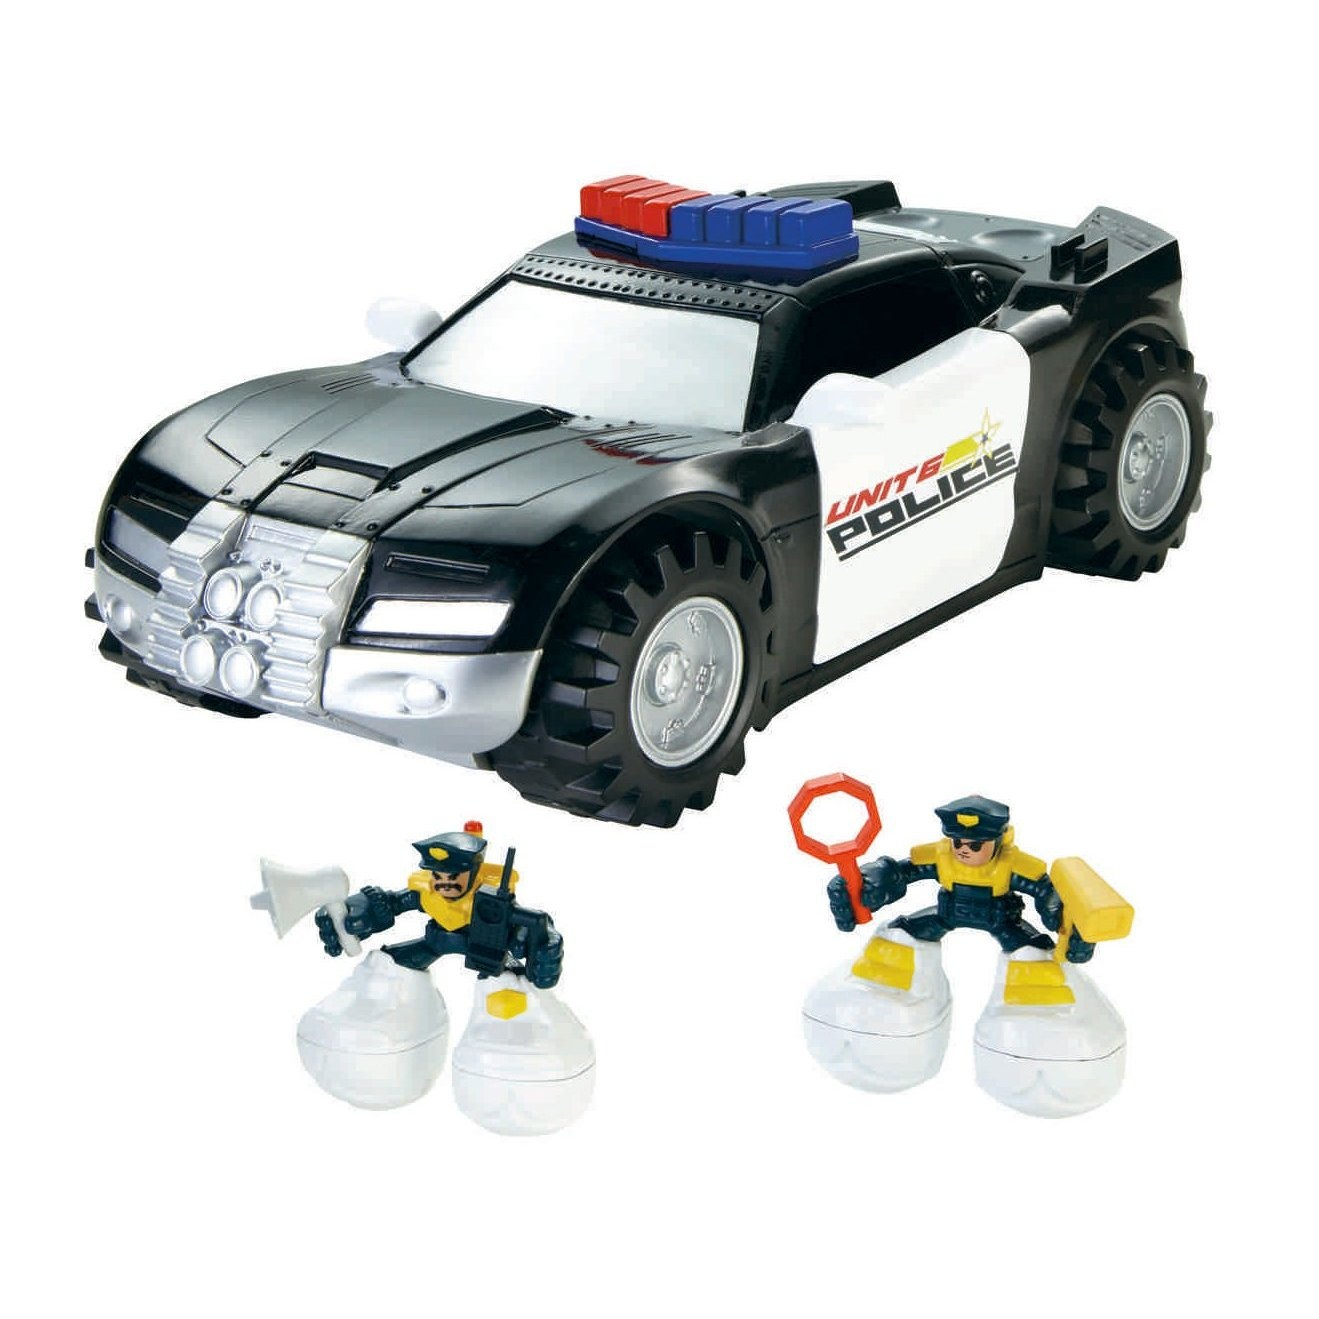 Matchbox Big Boots Police Car Vehicle By Mattel Shop Online For